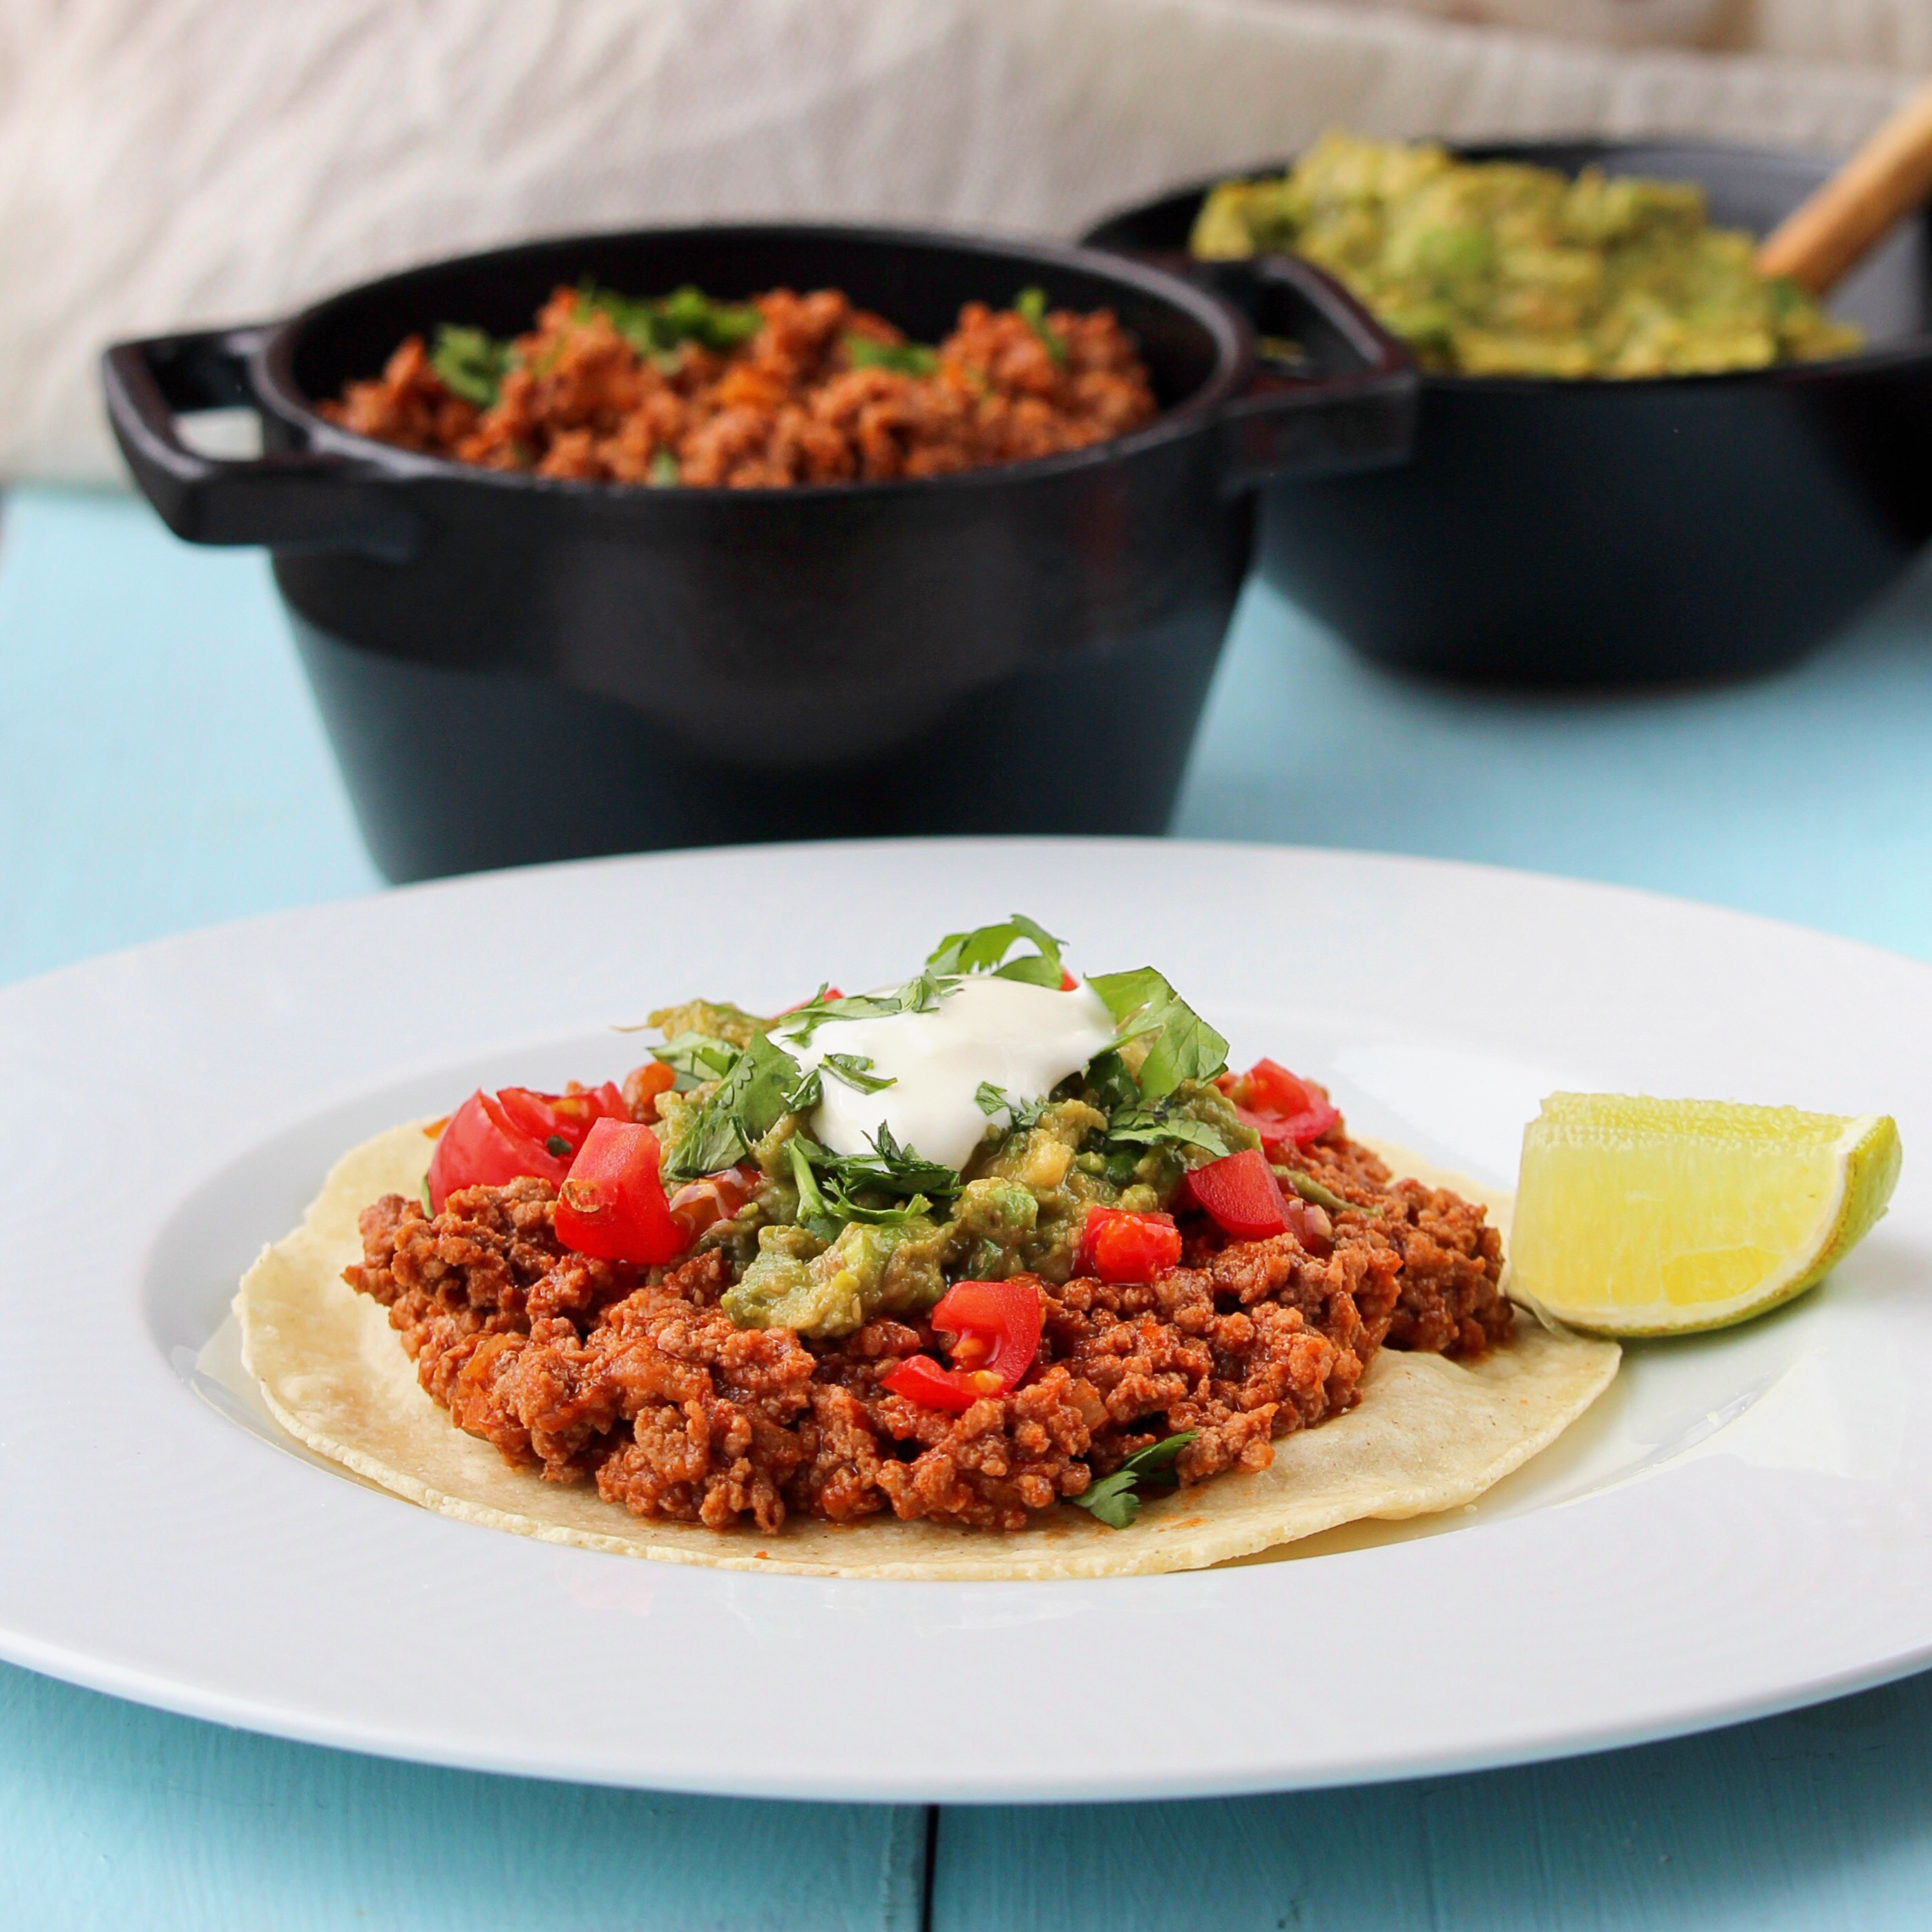 """""""It doesn't get much easier than this,"""" says bd.weld. """"Lean ground turkey and salsa ranchera combined and made in a pressure cooker such as Instant Pot®. Perfect for tacos, burritos, or even a taco salad."""""""